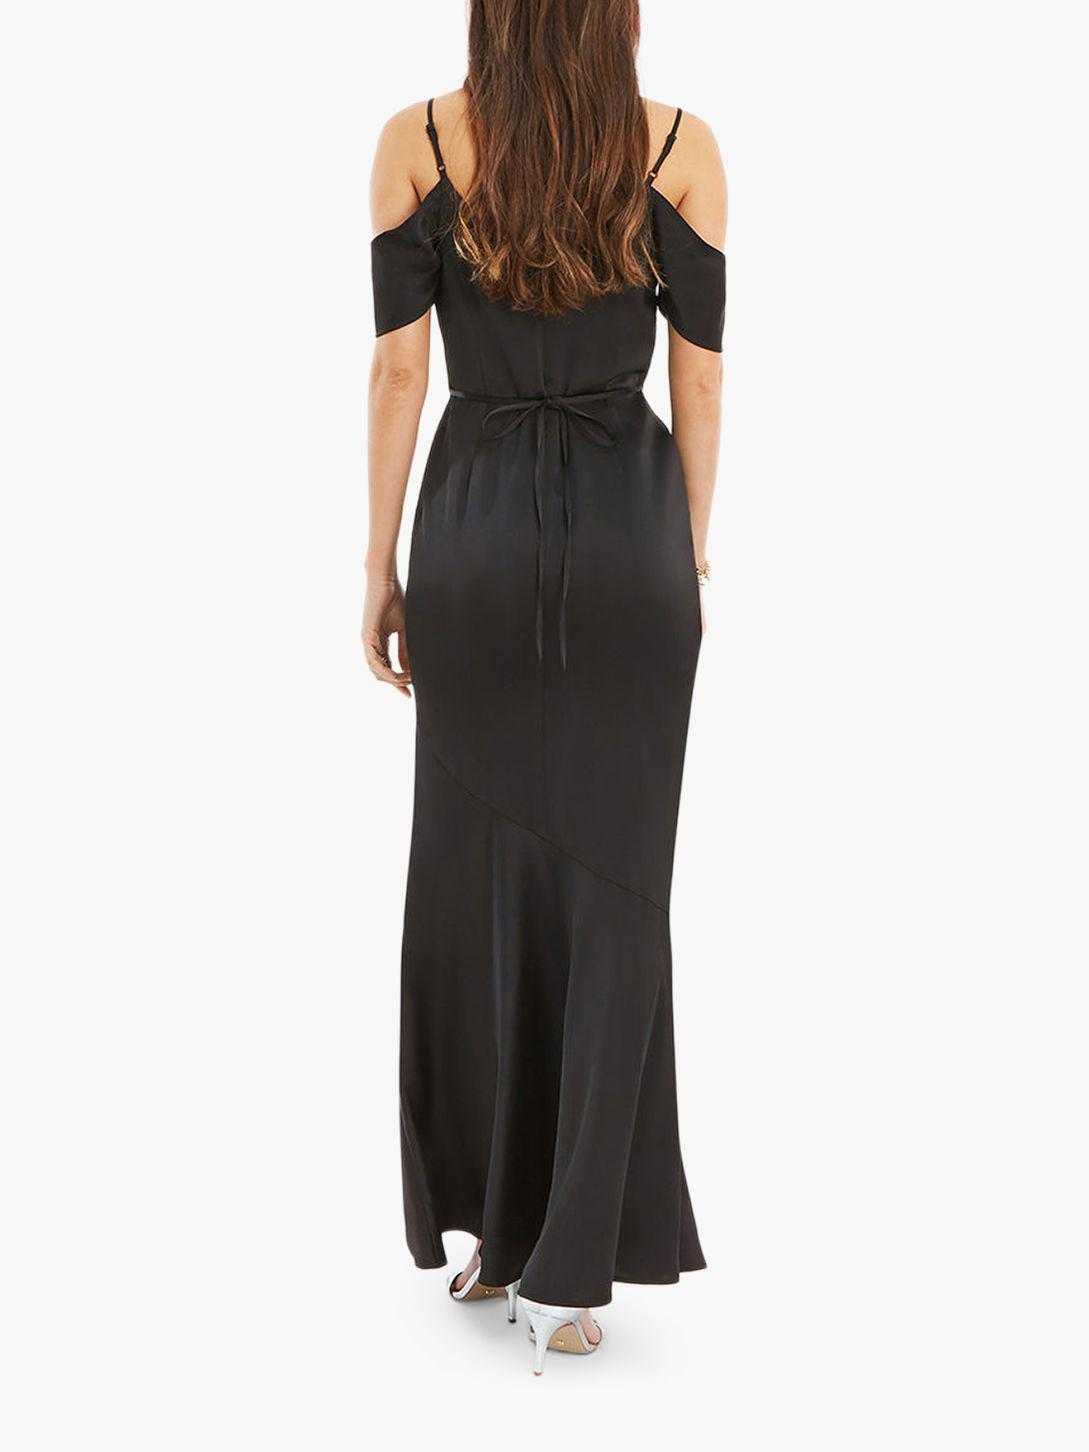 ca1f9e249fb4 Oasis Amy Slinky Off Shoulder Slinky Maxi Dress in Black - Lyst